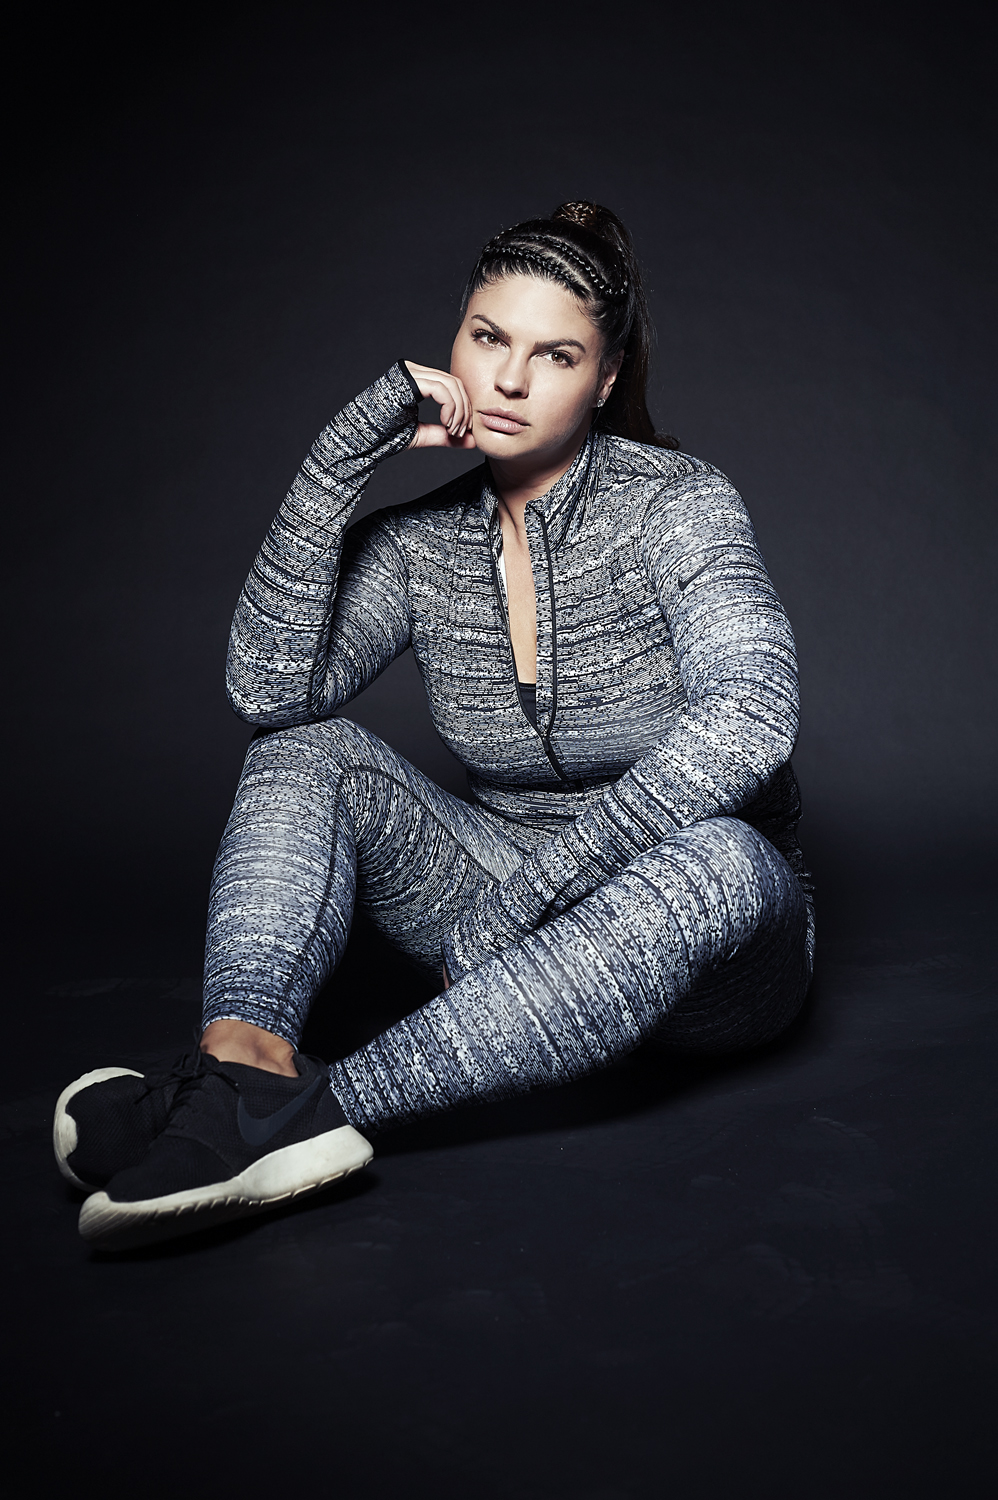 "Me as a plus size model, feeling healthy and strong as a size 14/16, 210lb woman at 5'10.5"". Photo by  Elina Khachaturyan , hair by  Christine Poindexter , outfit by  Nike ."